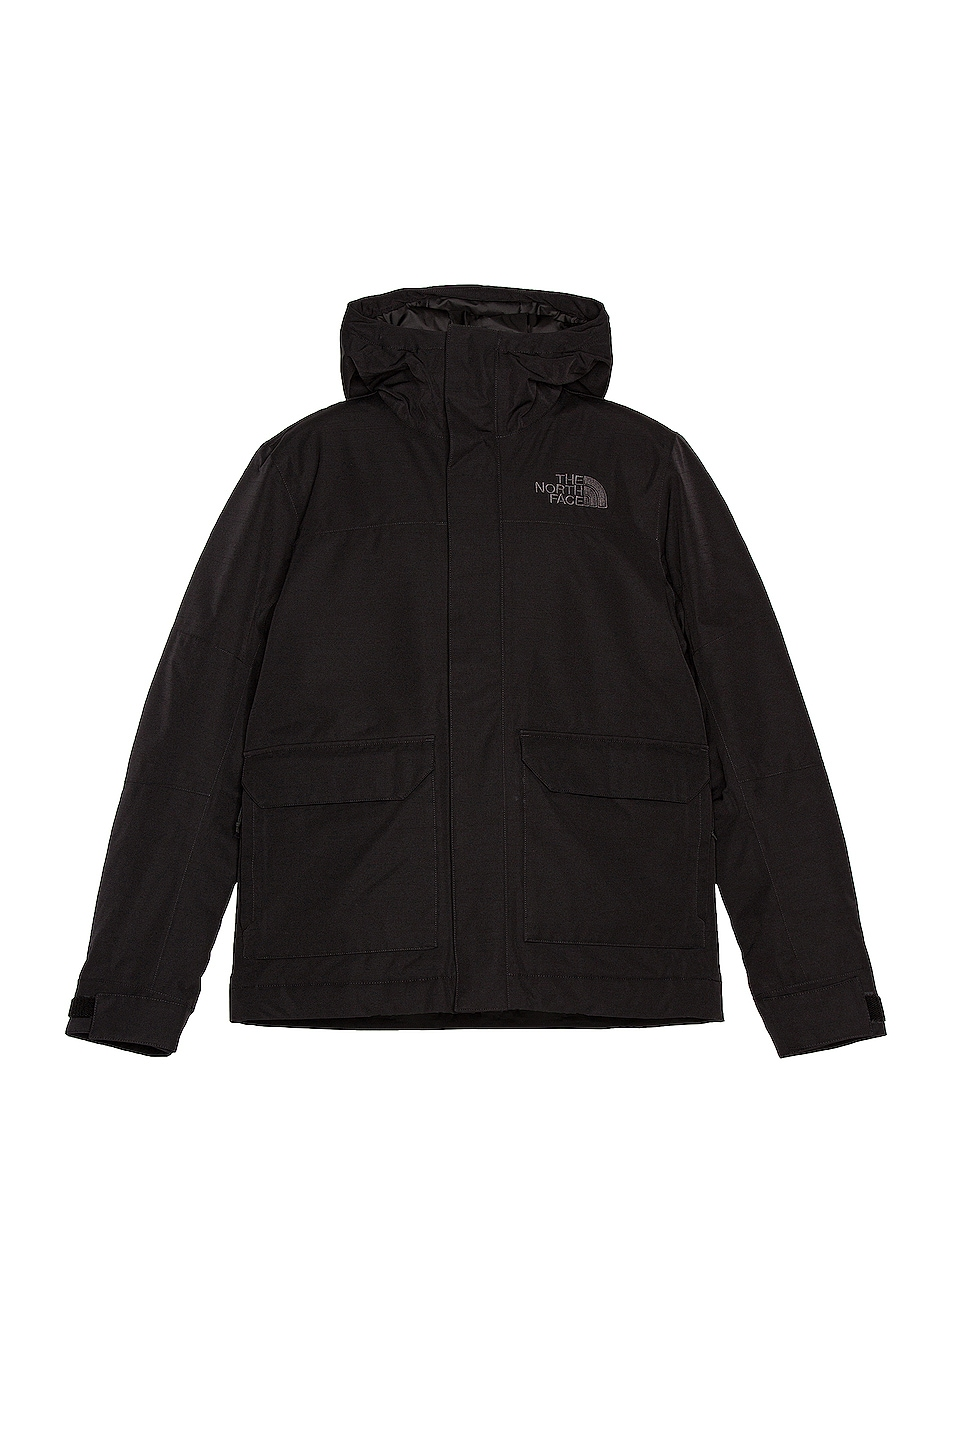 Image 1 of The North Face Cypress Insulated Jacket in TNF Black